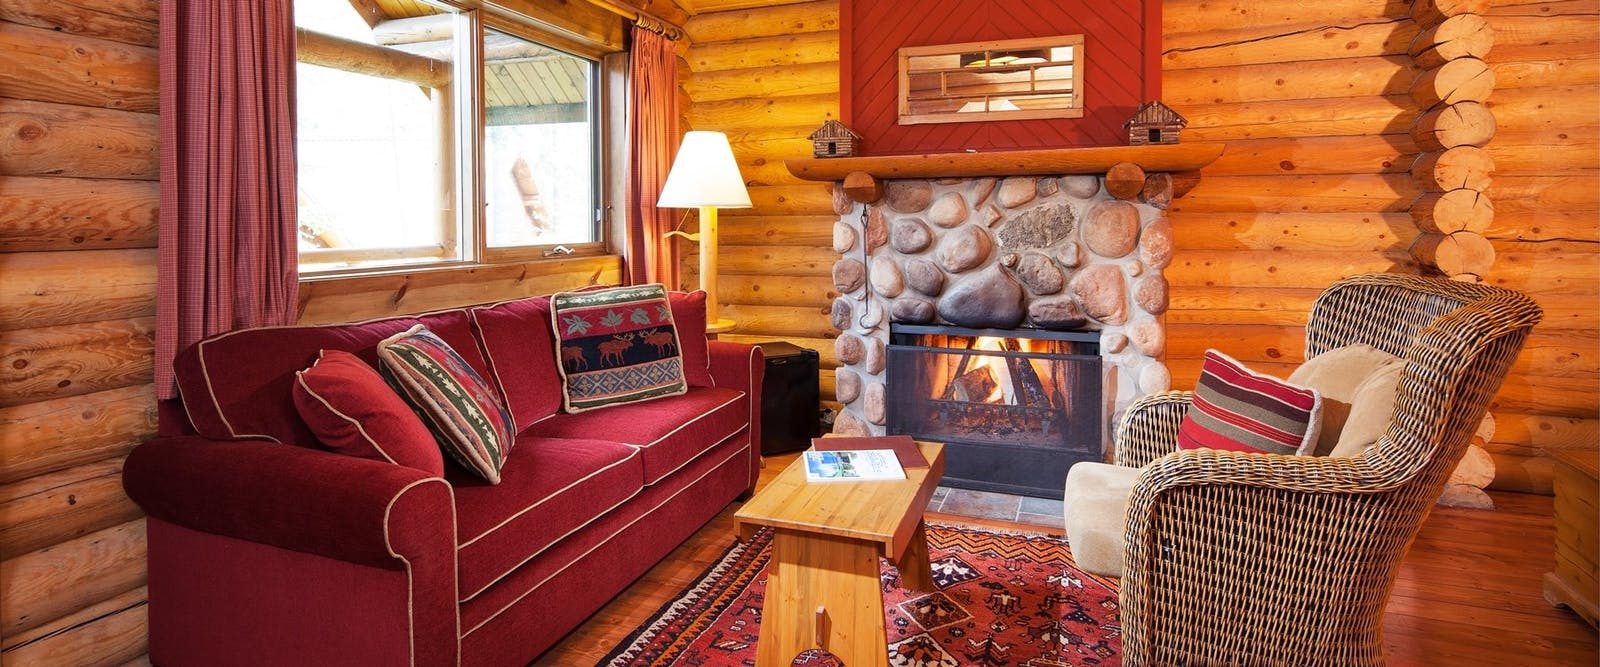 Living room area in lodge at Cathedral Mountain Lodge, British Columbia